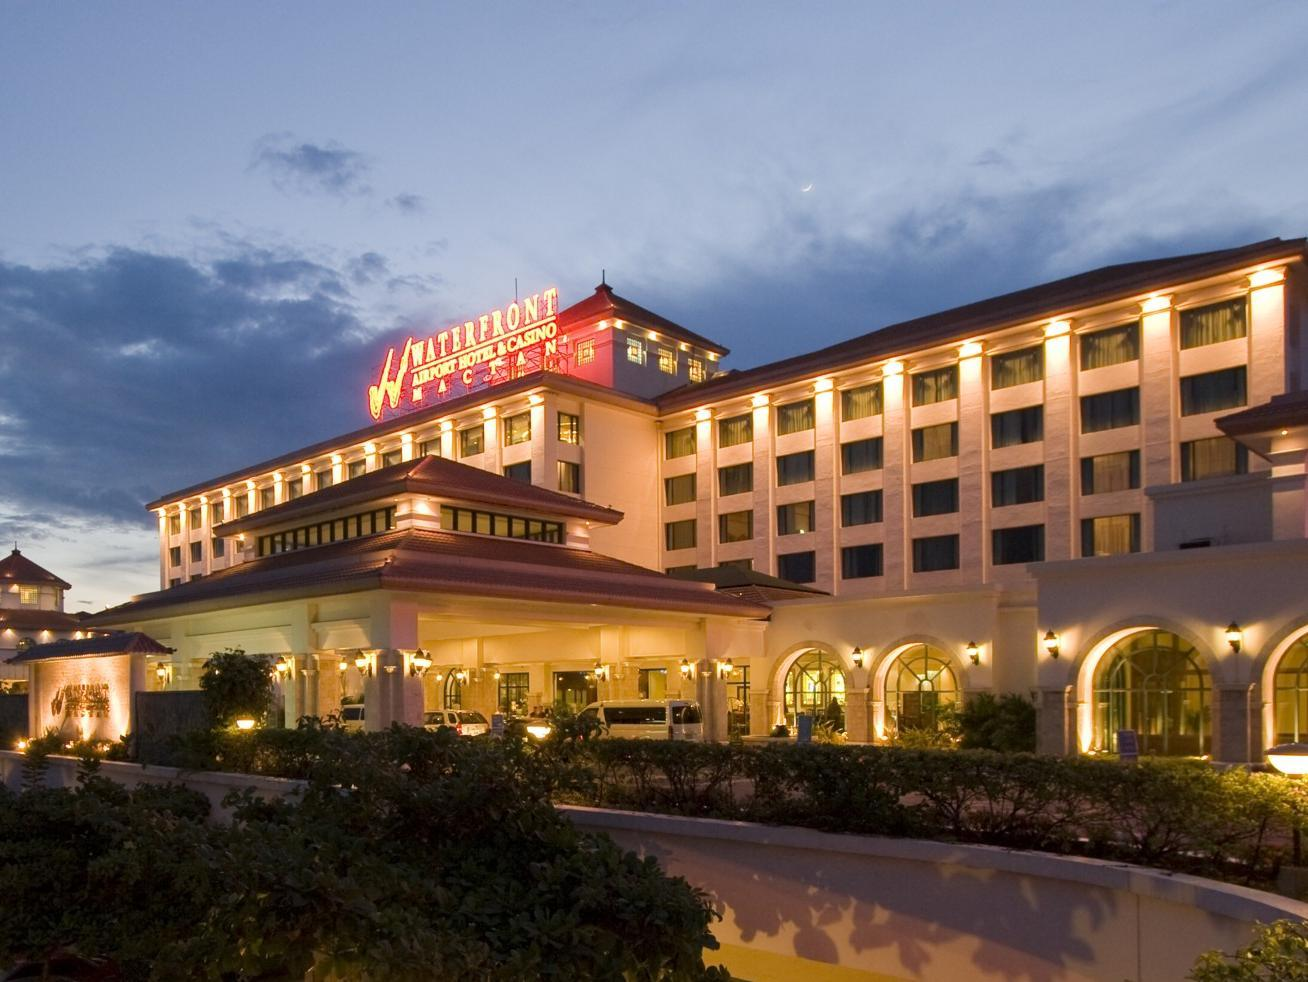 Waterfront Airport Hotel and Casino 宿雾